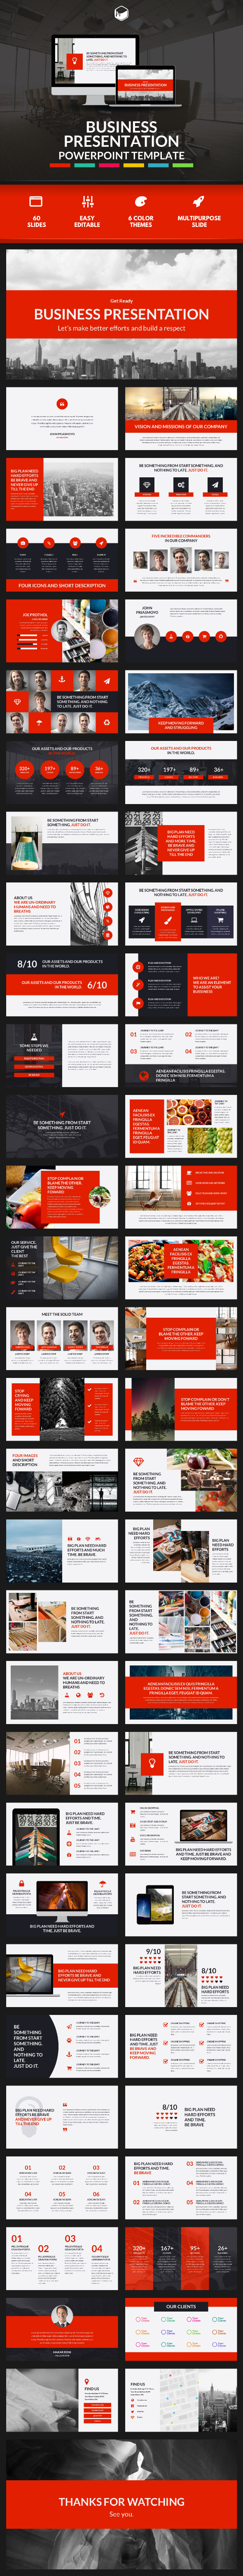 Business Presentation 2 - PowerPoint Template